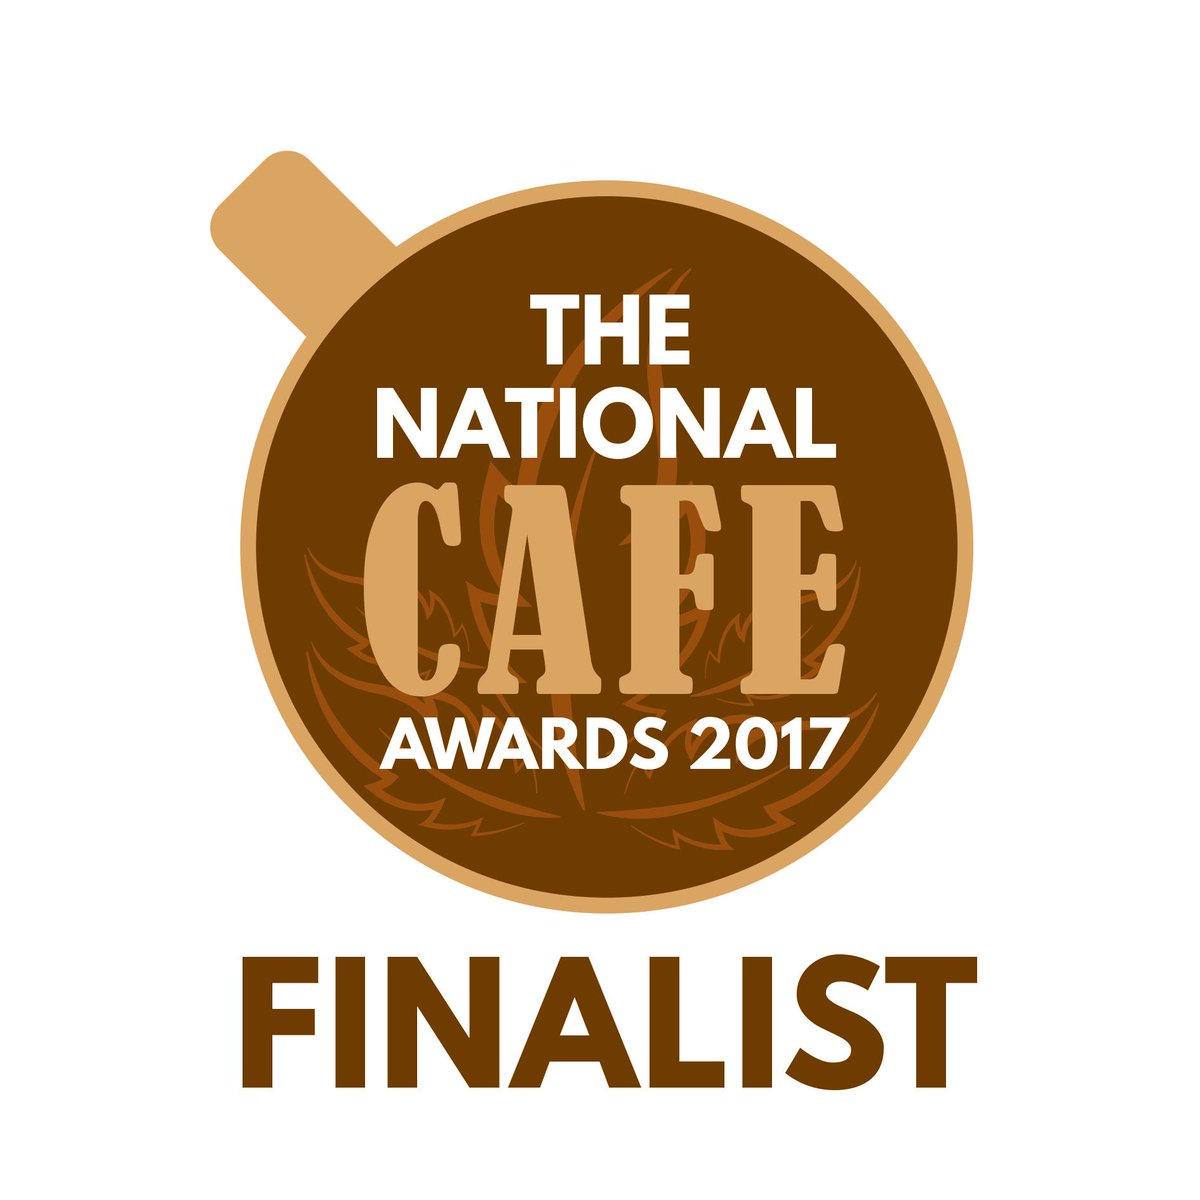 WOW what an honour to have been shortlisted as a finalist for &#39;Best Cafe Team&#39; at the #NationalCafeAwards  @CreativeOceanic<br>http://pic.twitter.com/QjXhPTF3nY